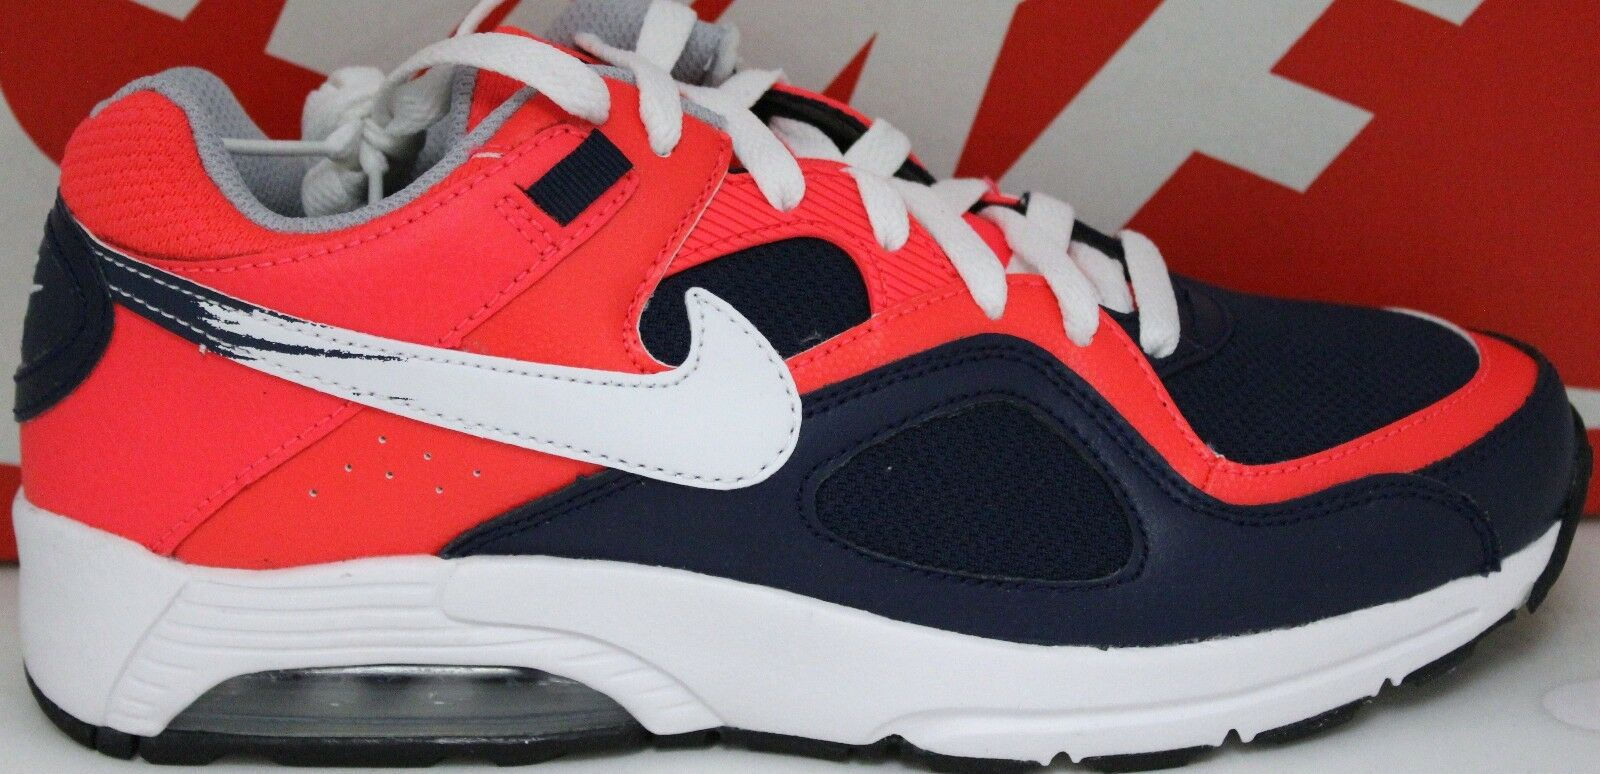 Nike Air Max Go Strong Essential 631718 600 Crimson White Mid Navy New In Box